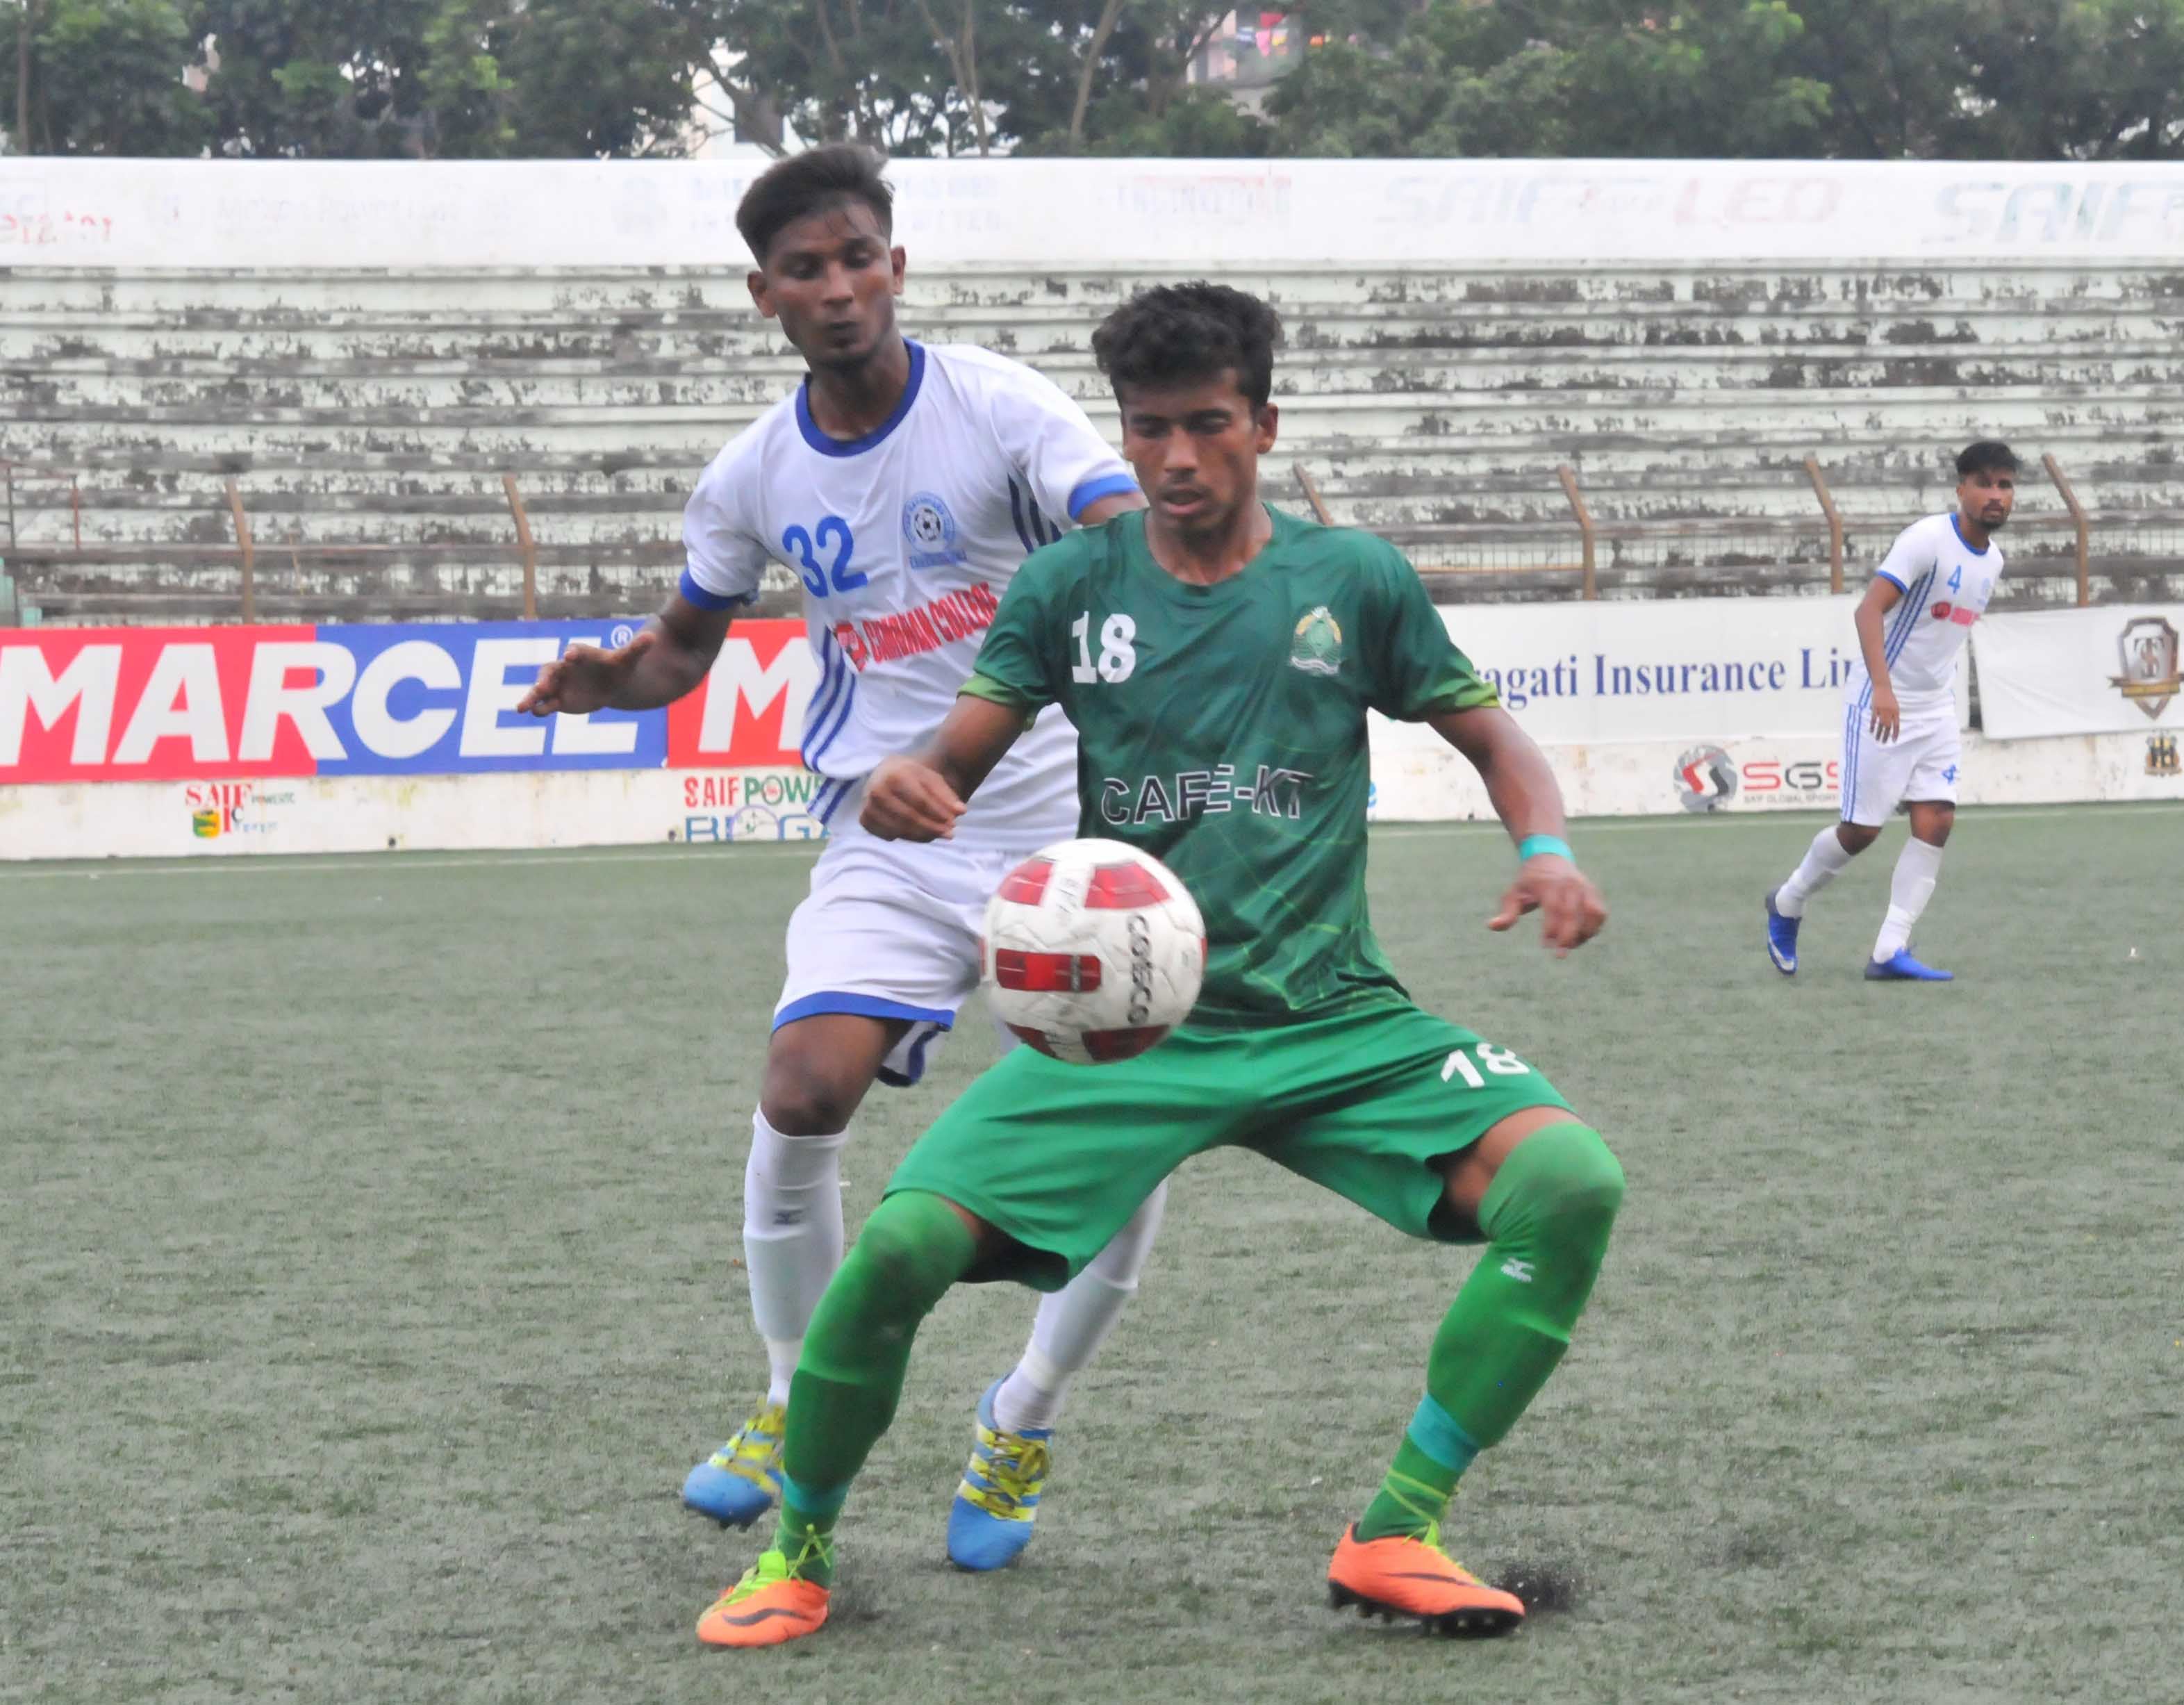 A view of the match of the Marcel Bangladesh Championship League Football between Uttar Baridhara Club and Victoria Sporting Club at the Bir Shreshtha Shaheed Sepoy Mohammad Mostafa Kamal Stadium in the city's Kamalapur on Thursday. Uttar Baridhara Club won the match 2-1.